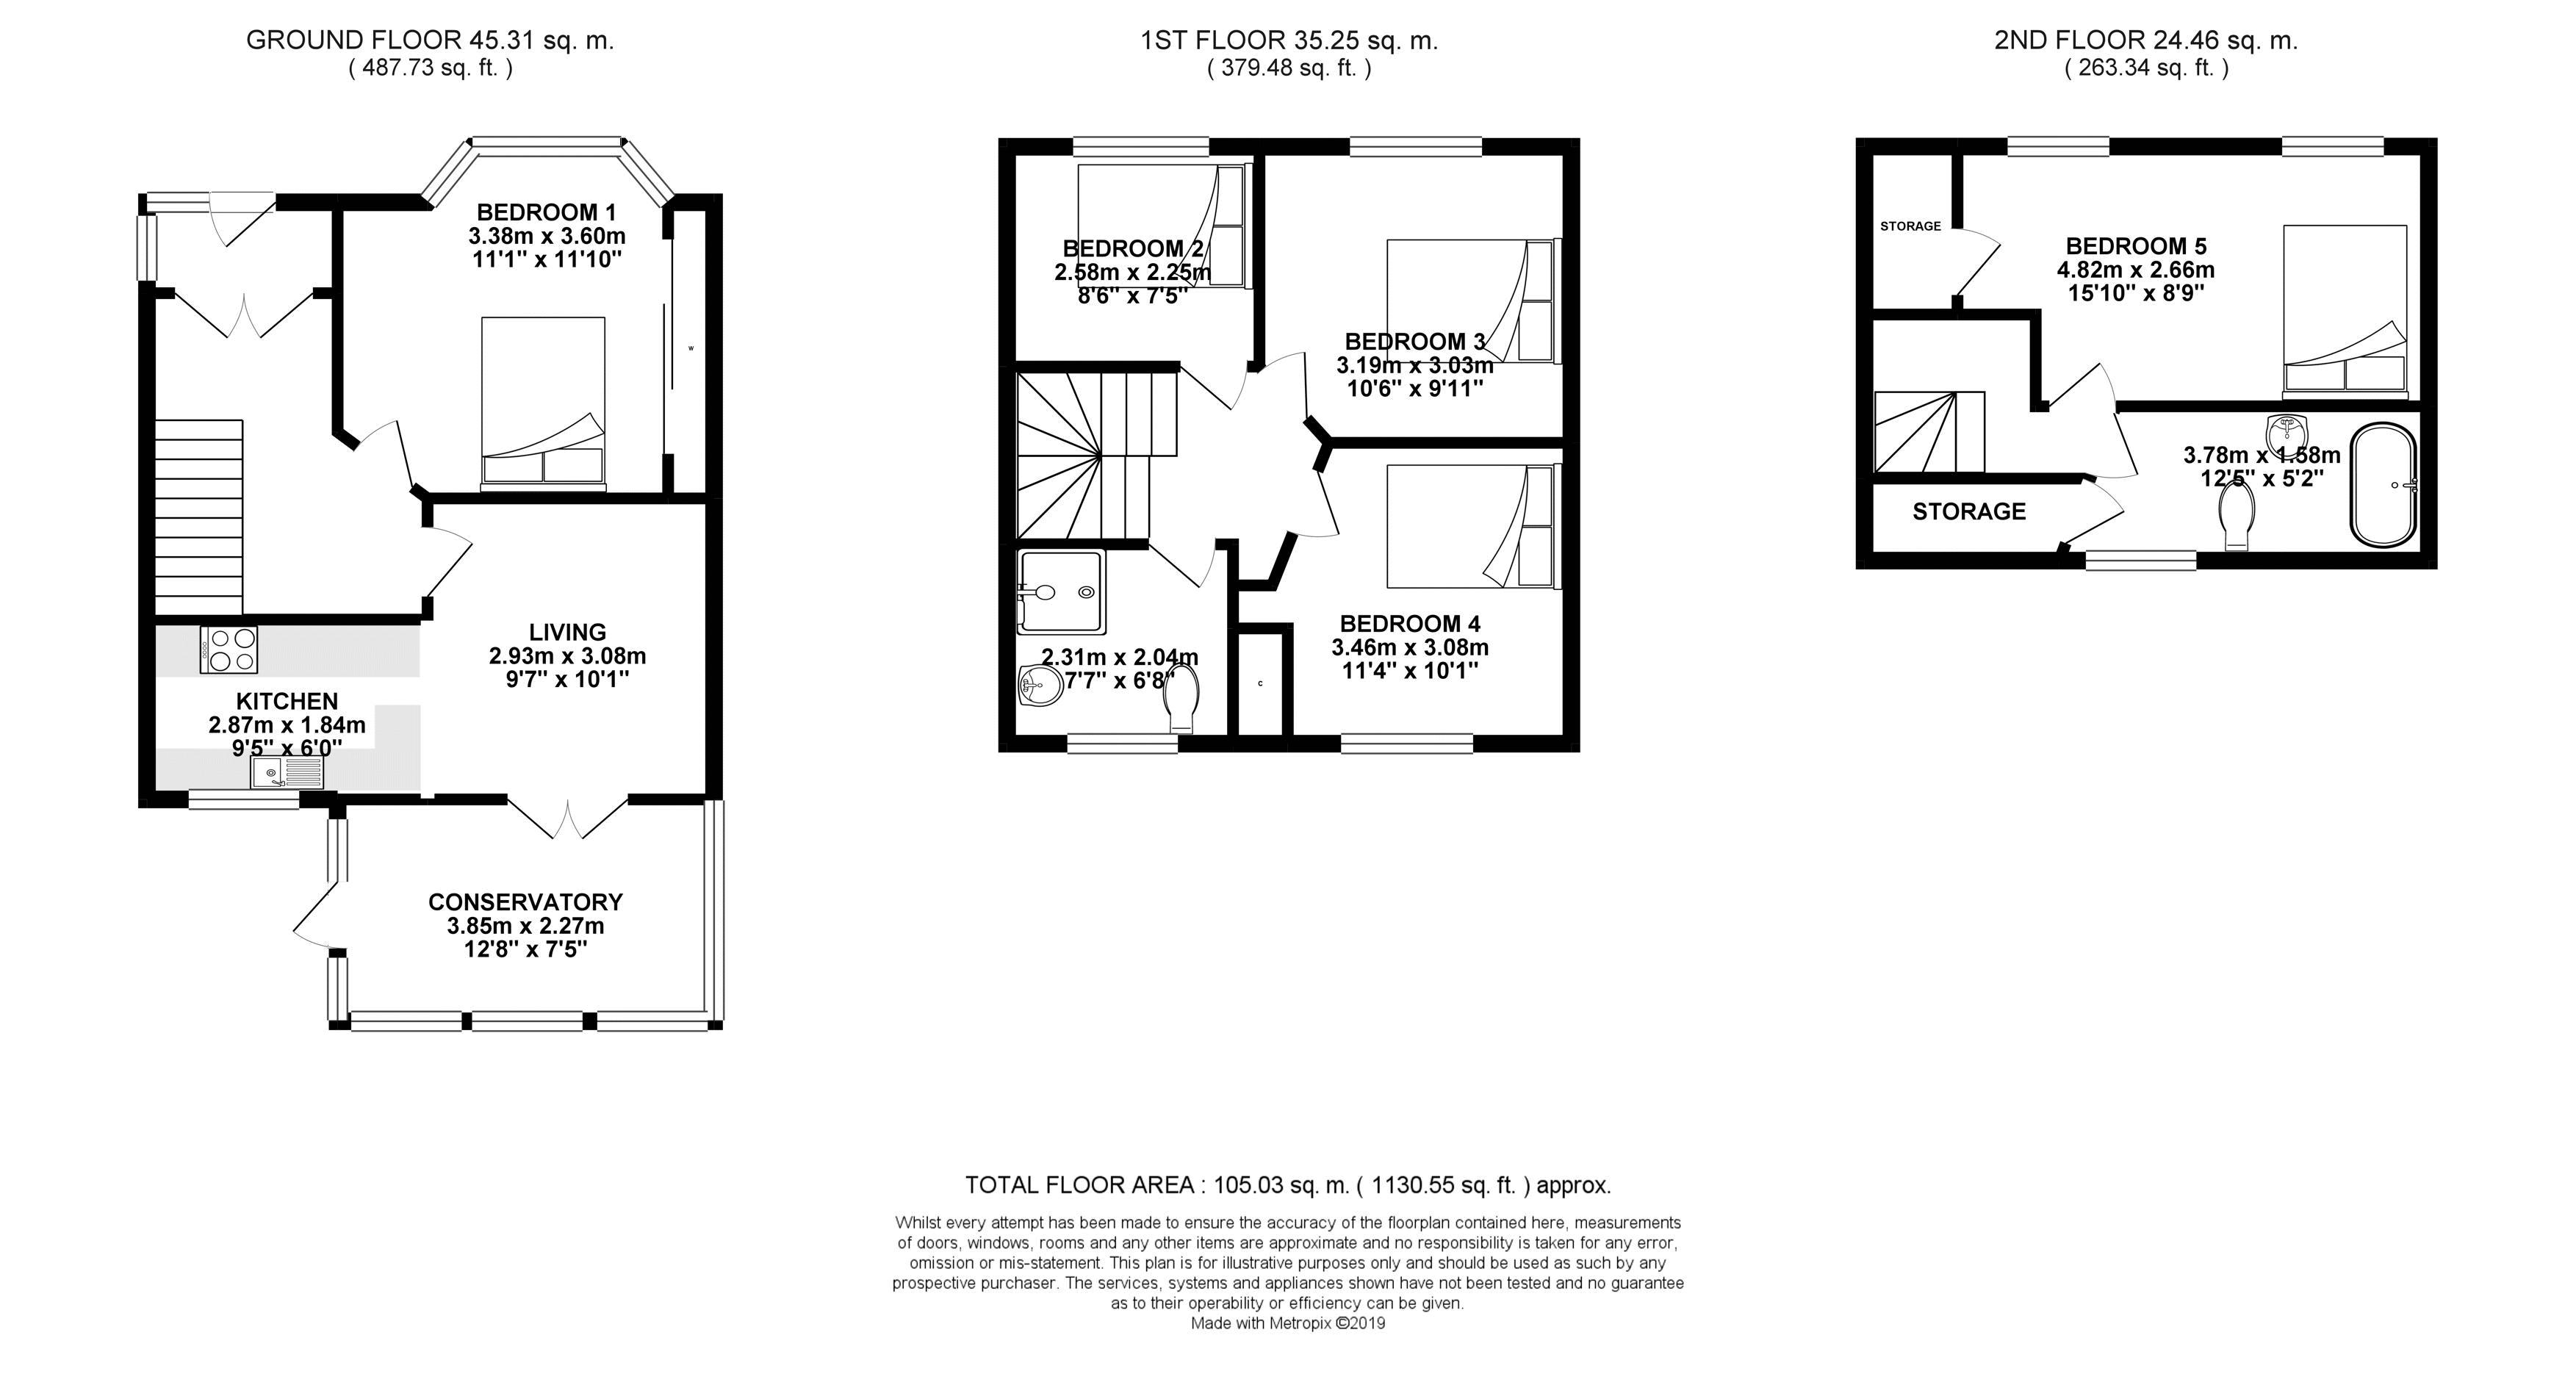 Floor plans for Widdicombe Way, Brighton property for sale in Bevendean, Brighton by Coapt